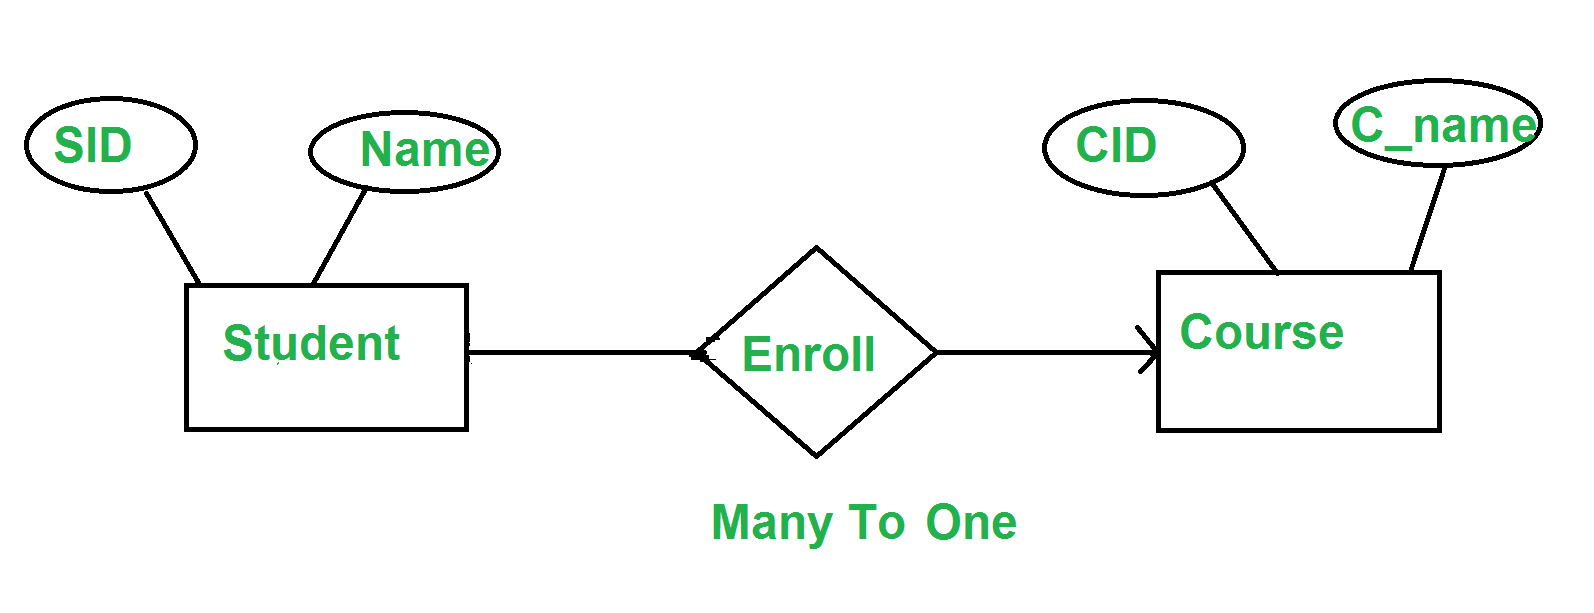 Minimization Of Er Diagrams - Geeksforgeeks intended for Er Diagram Interview Questions